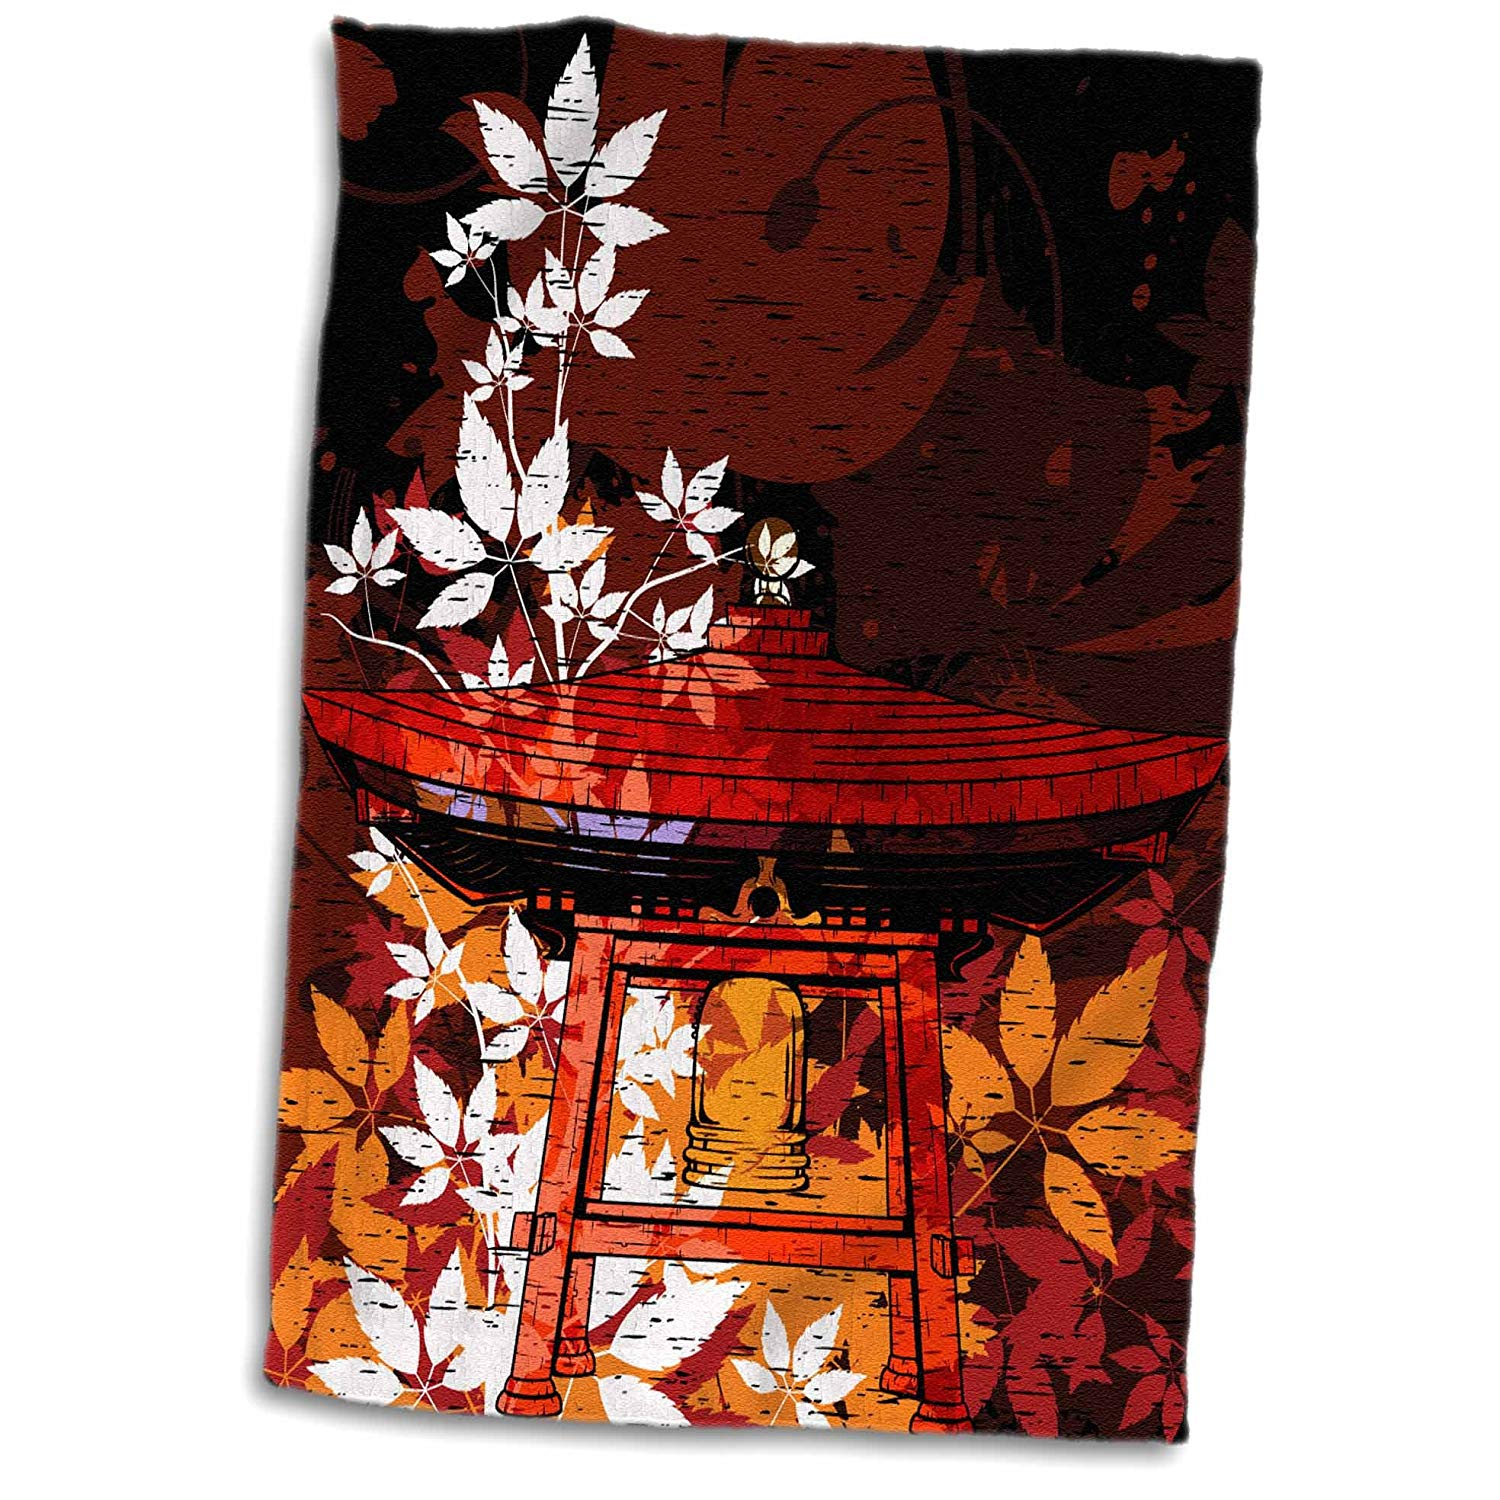 3dRose 3D Rose Pretty Ornate Japanese Bell Gong Decorated with Foliage Asian Oriental Art Hand/Sports Towel, 15 x 22